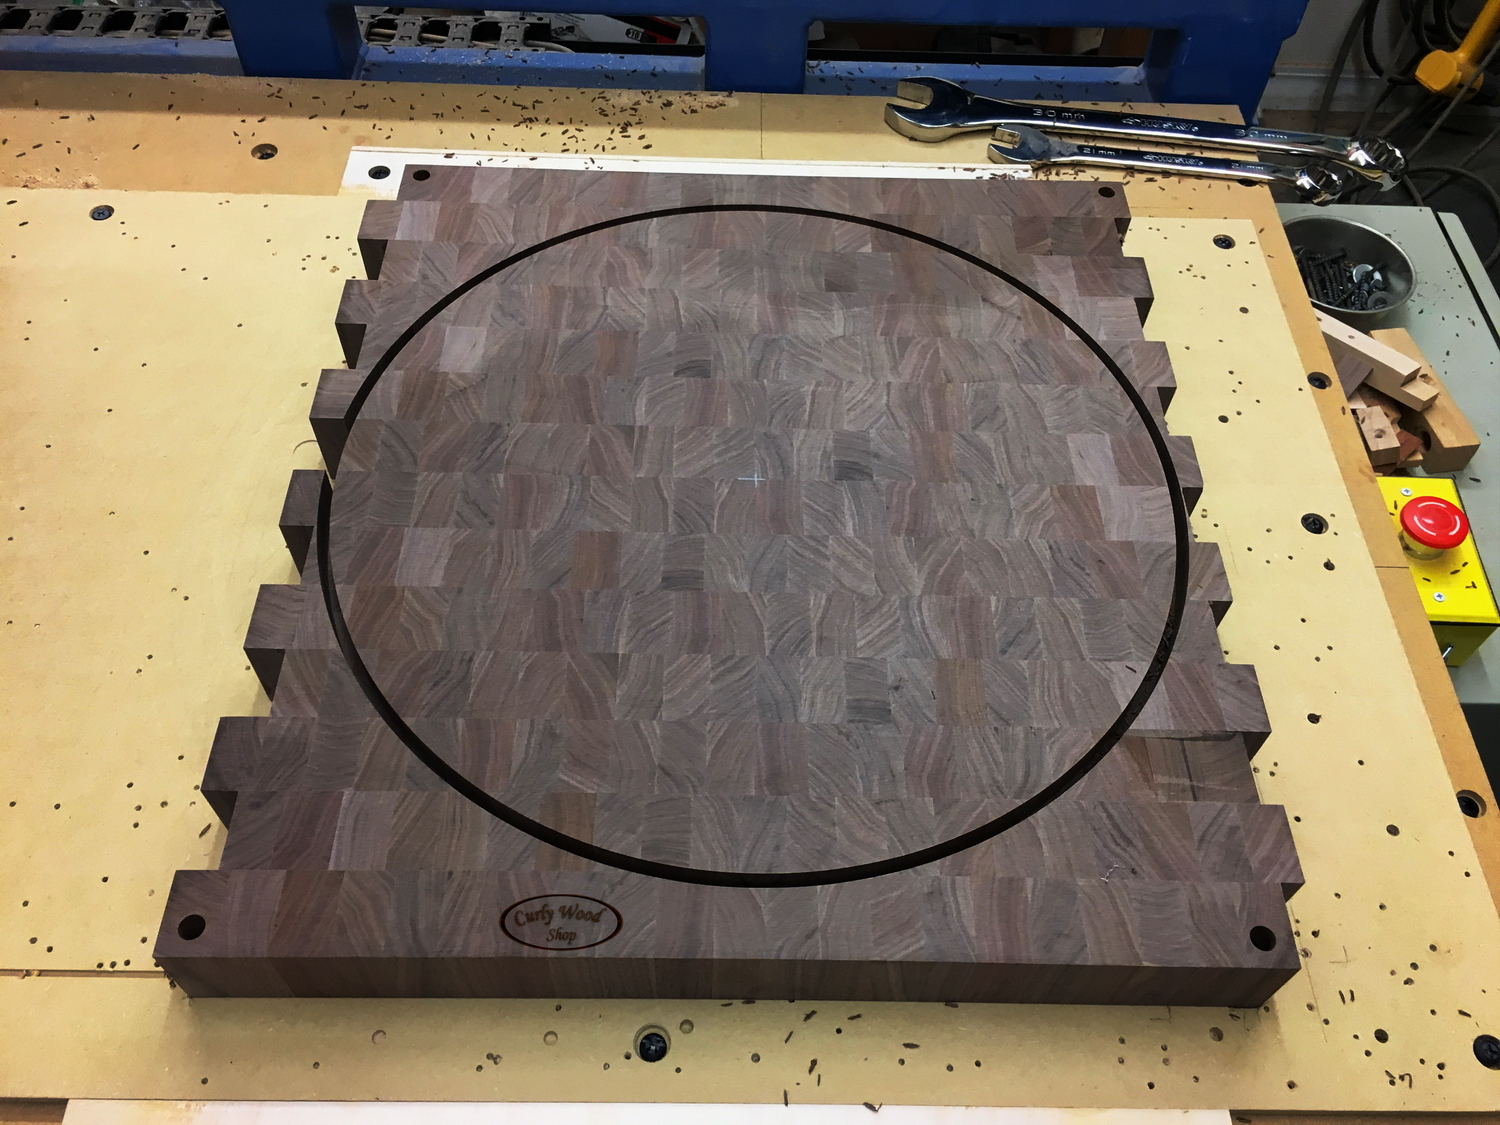 Drum sander snipe solution-009-cutting-board-cnc.jpg